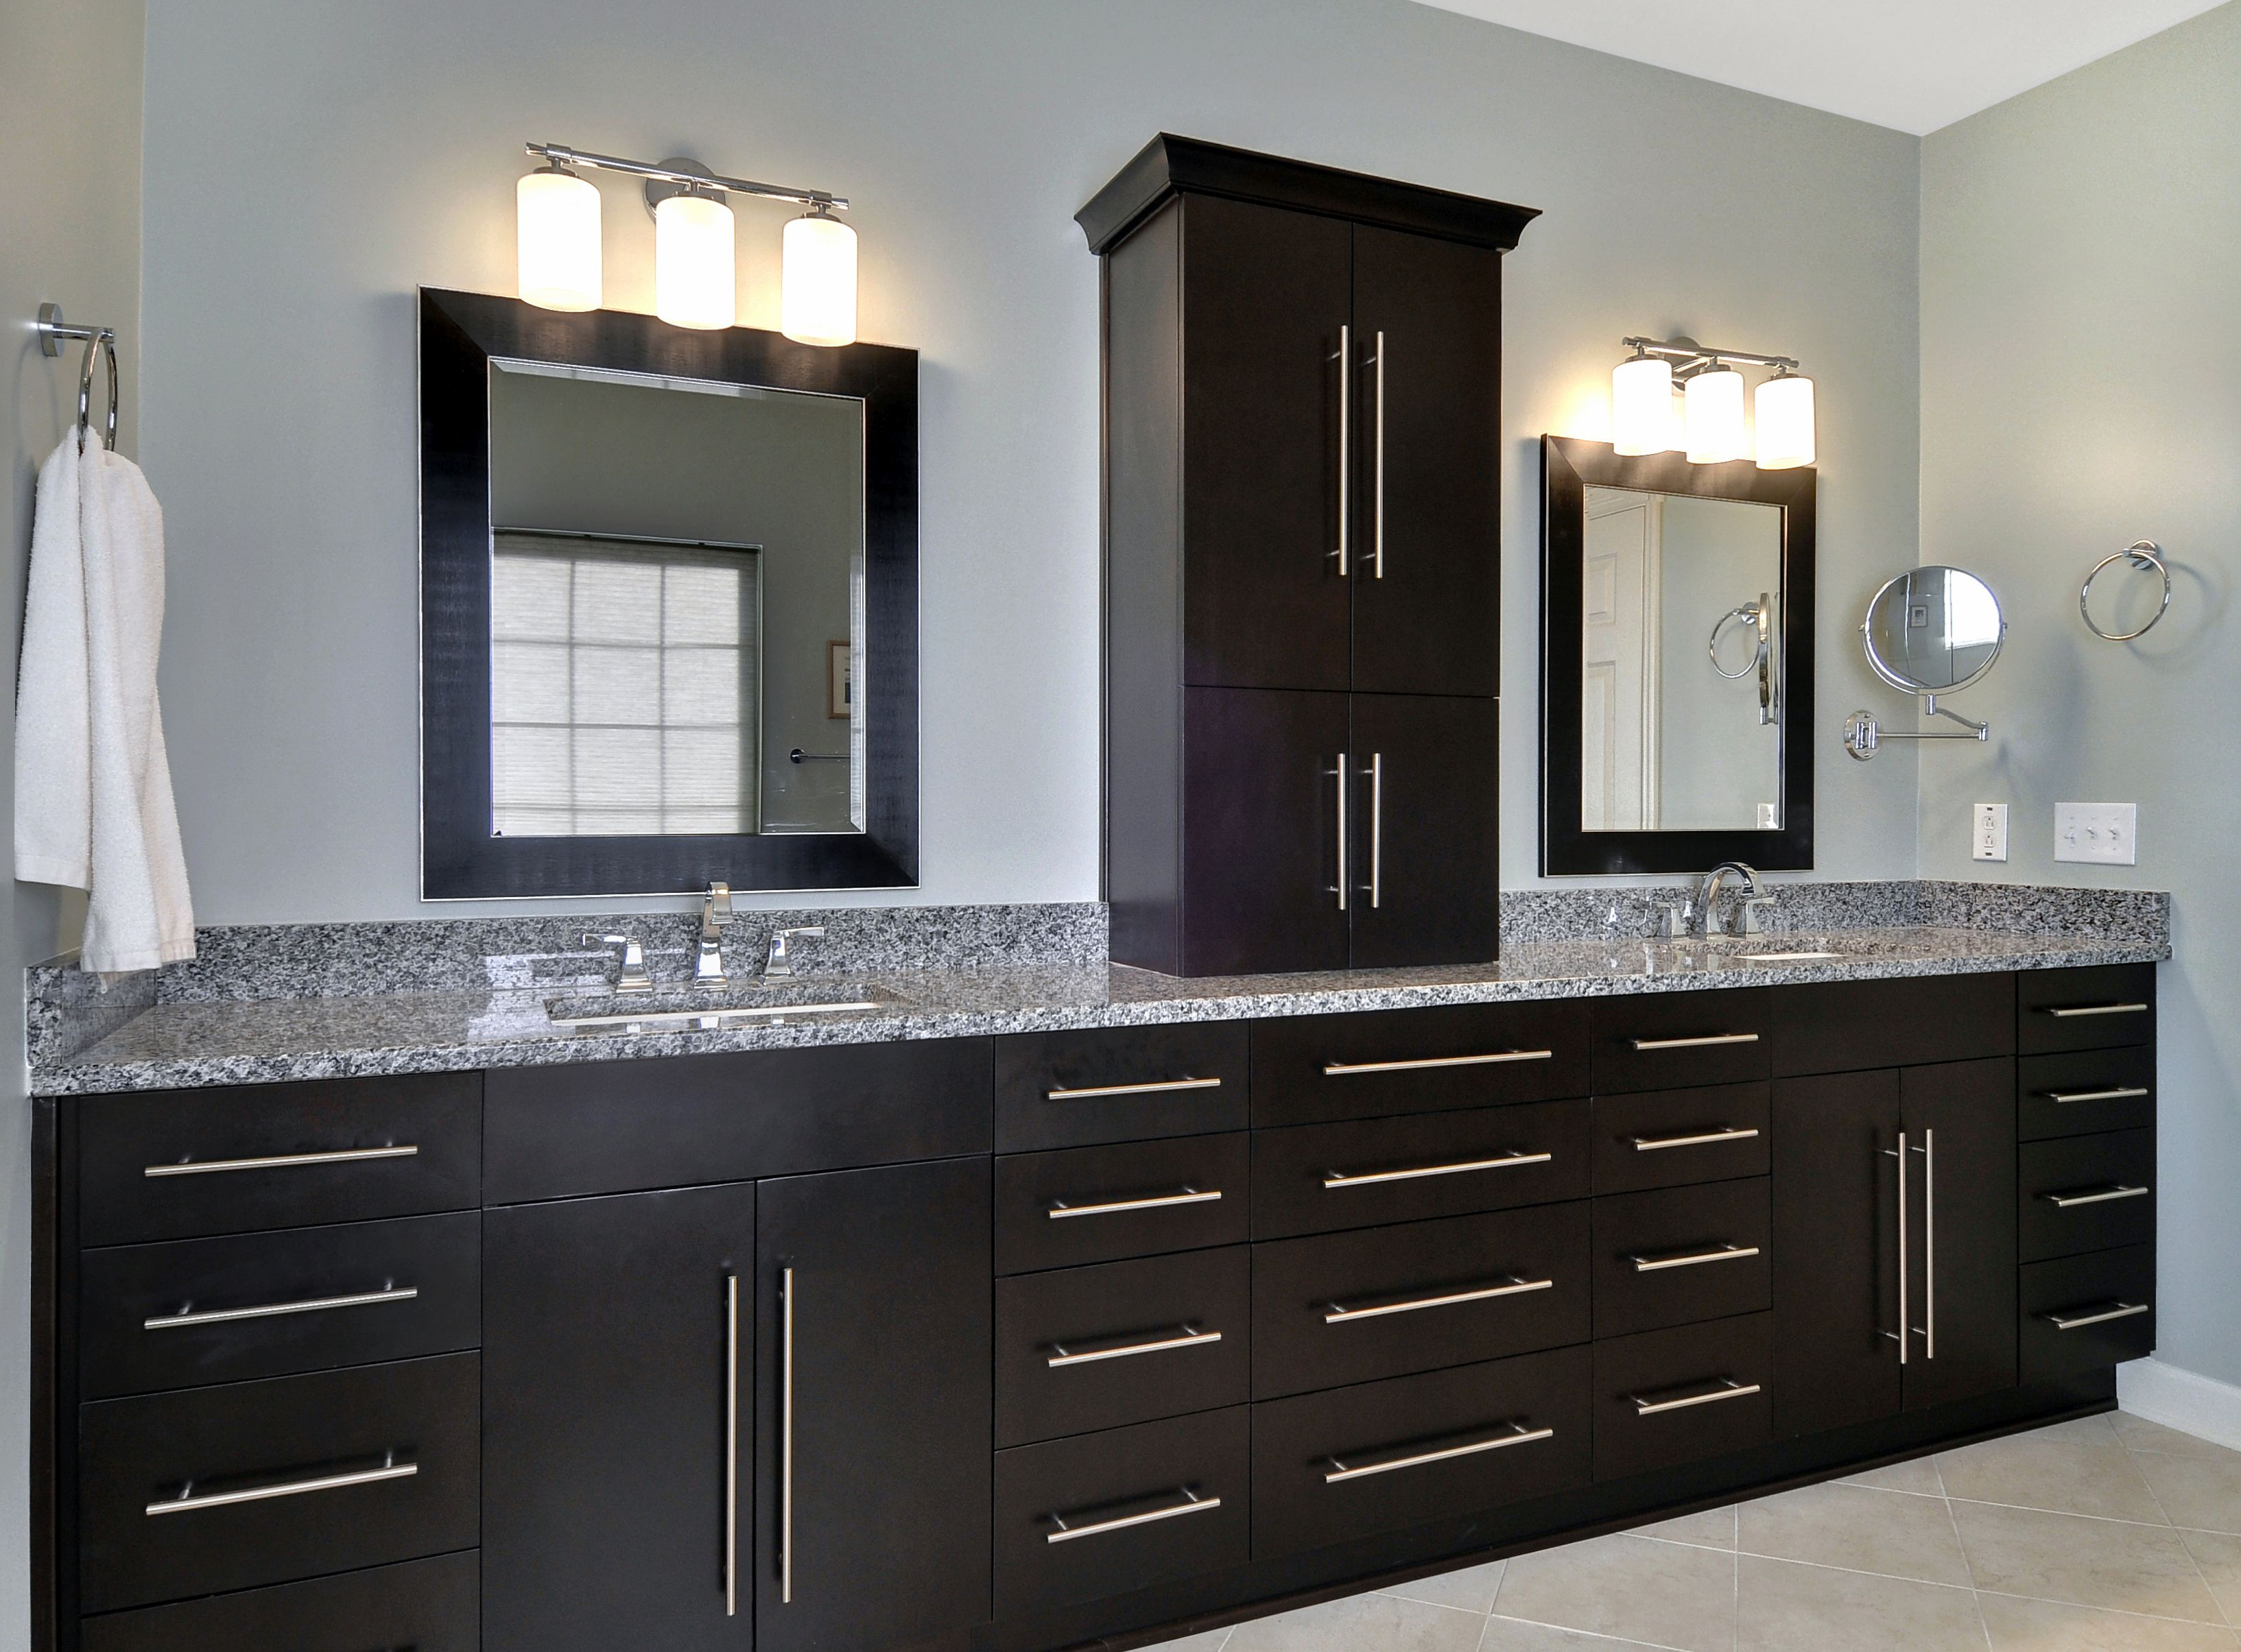 Kitchen Remodel Charleston Sc Custom Kitchen Cabinets Charleston Mount Pleasant Sc Mevers